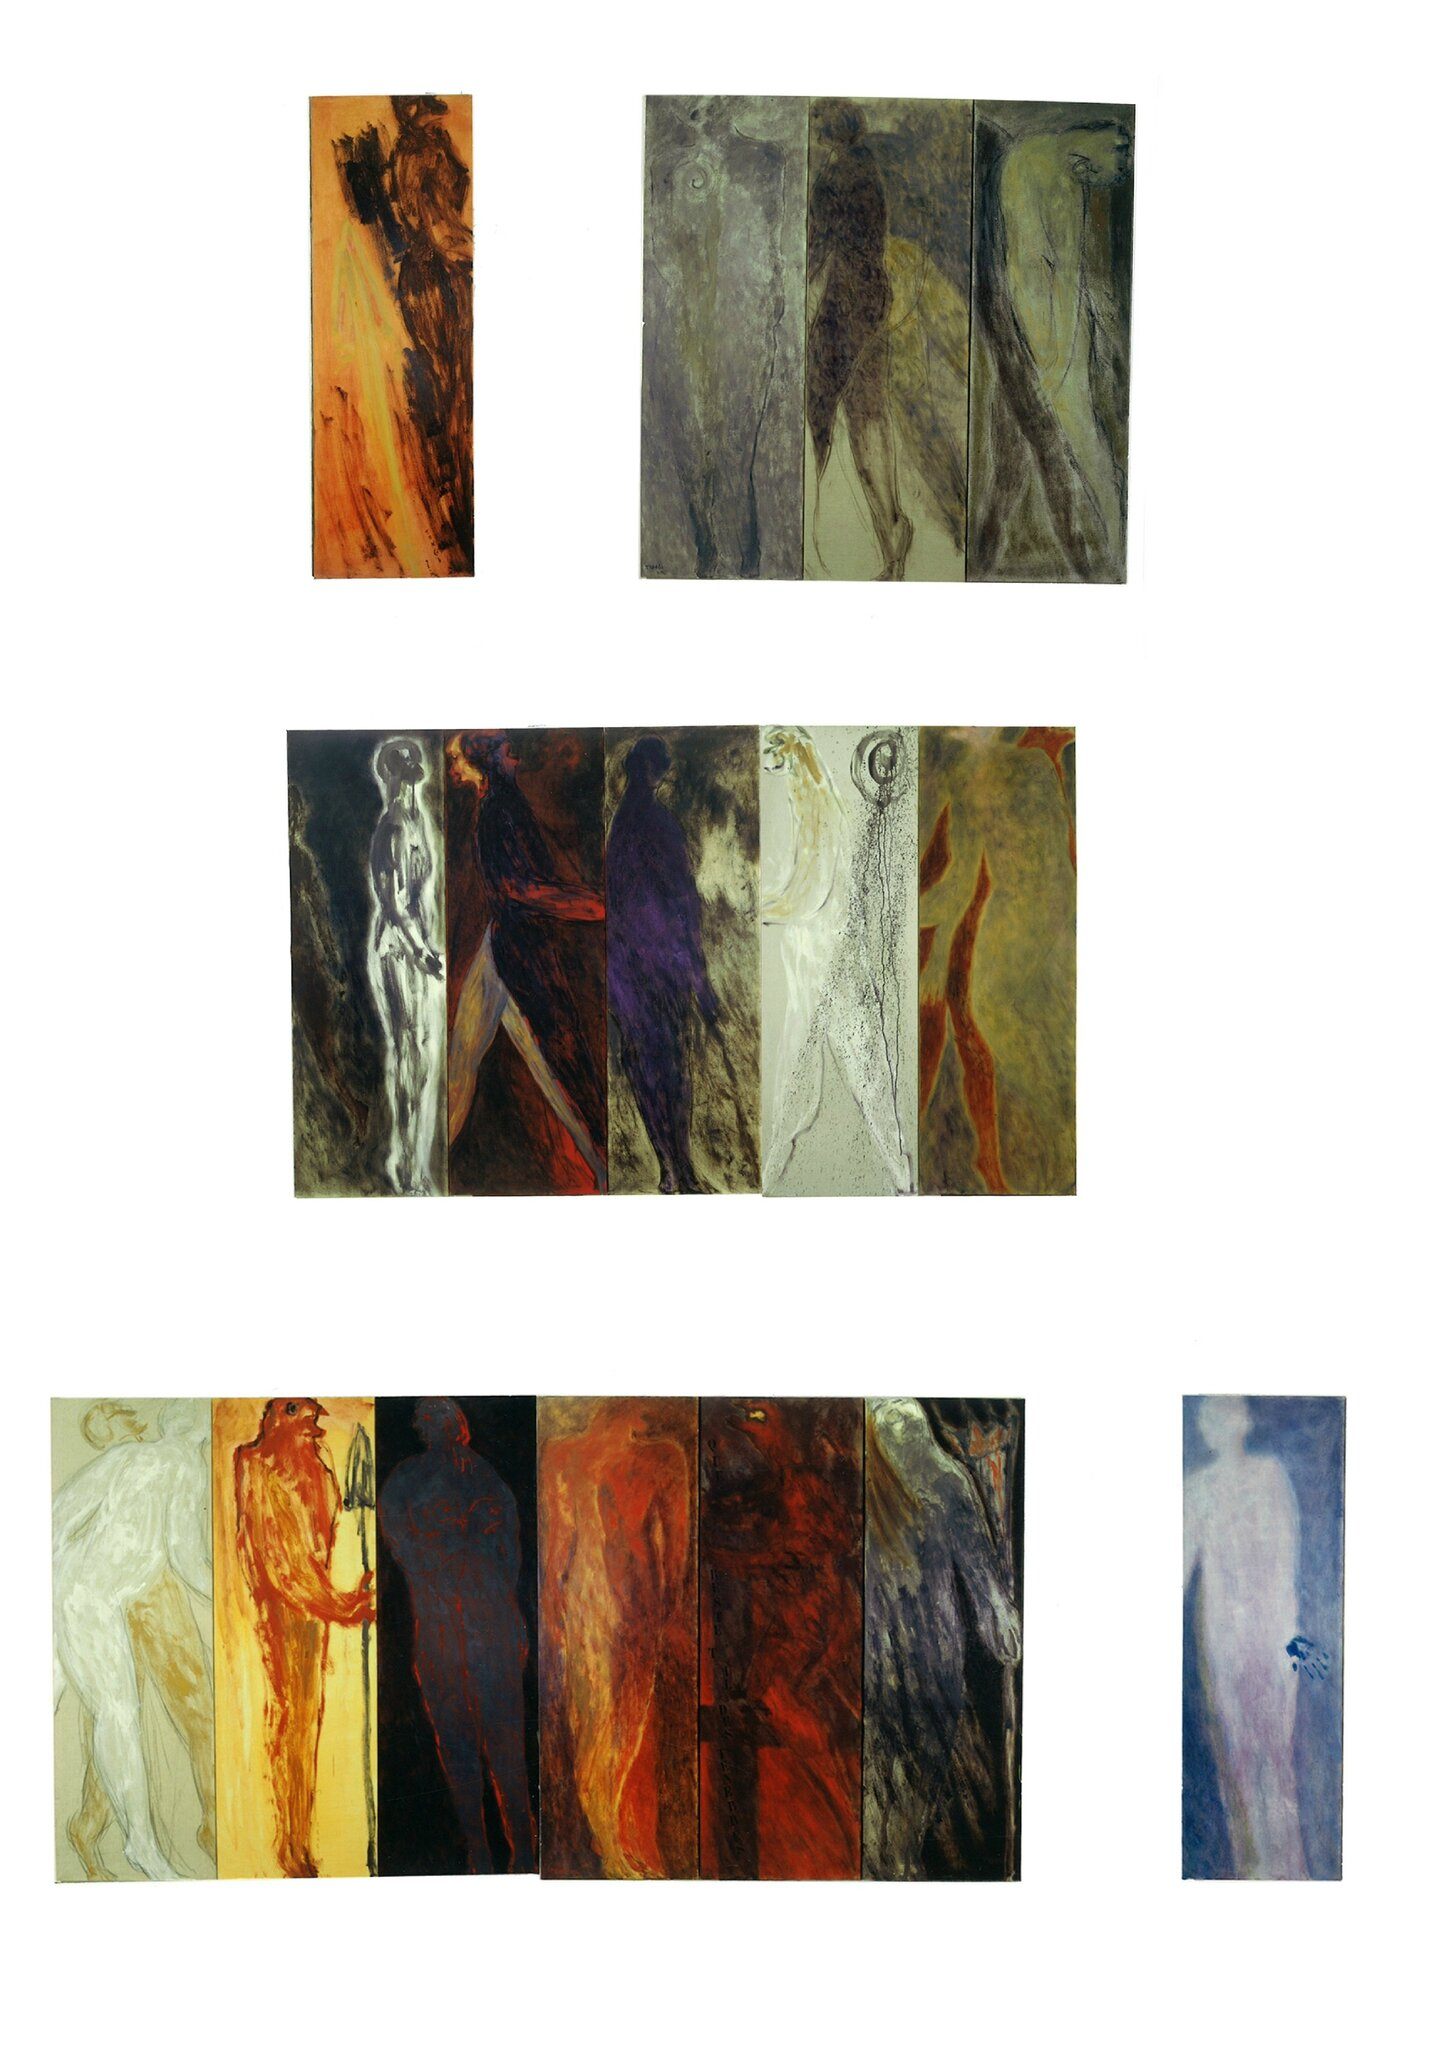 La Chambre des Rencontres /The Room of Encounters 1994-1999 - 32 oil on canvas 150x50cm each/chacune- detail